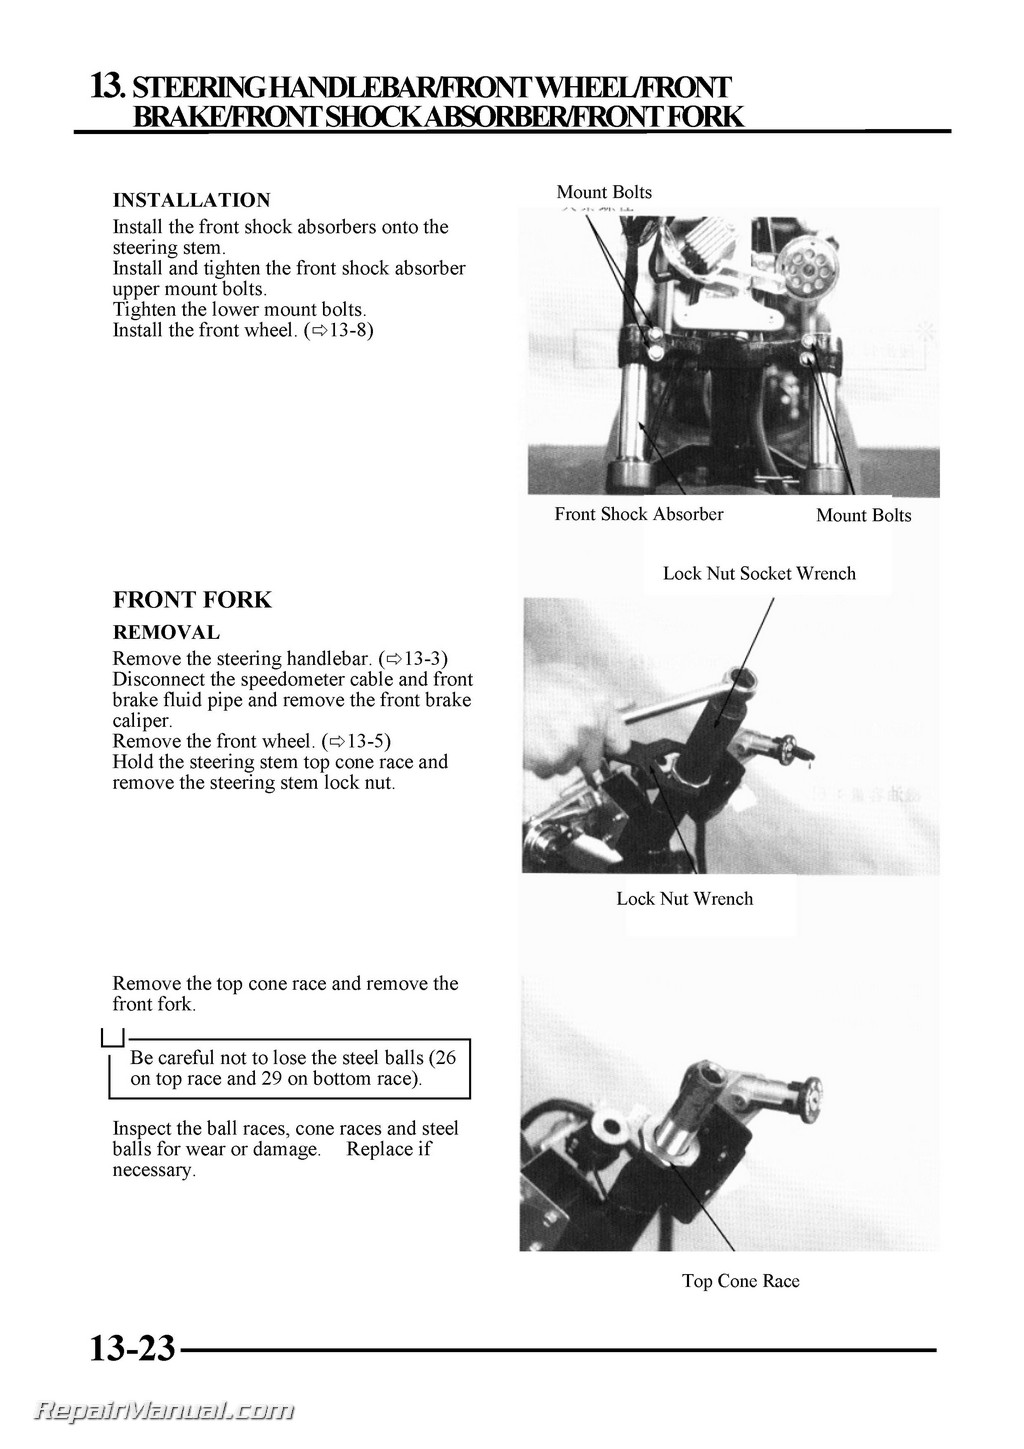 Kymco Cobra 5 0 Wiring Diagram Trusted Agility 125 50 Top Boy Scooter Service Manual Printed By Cyclepedia Rh Repairmanual Com